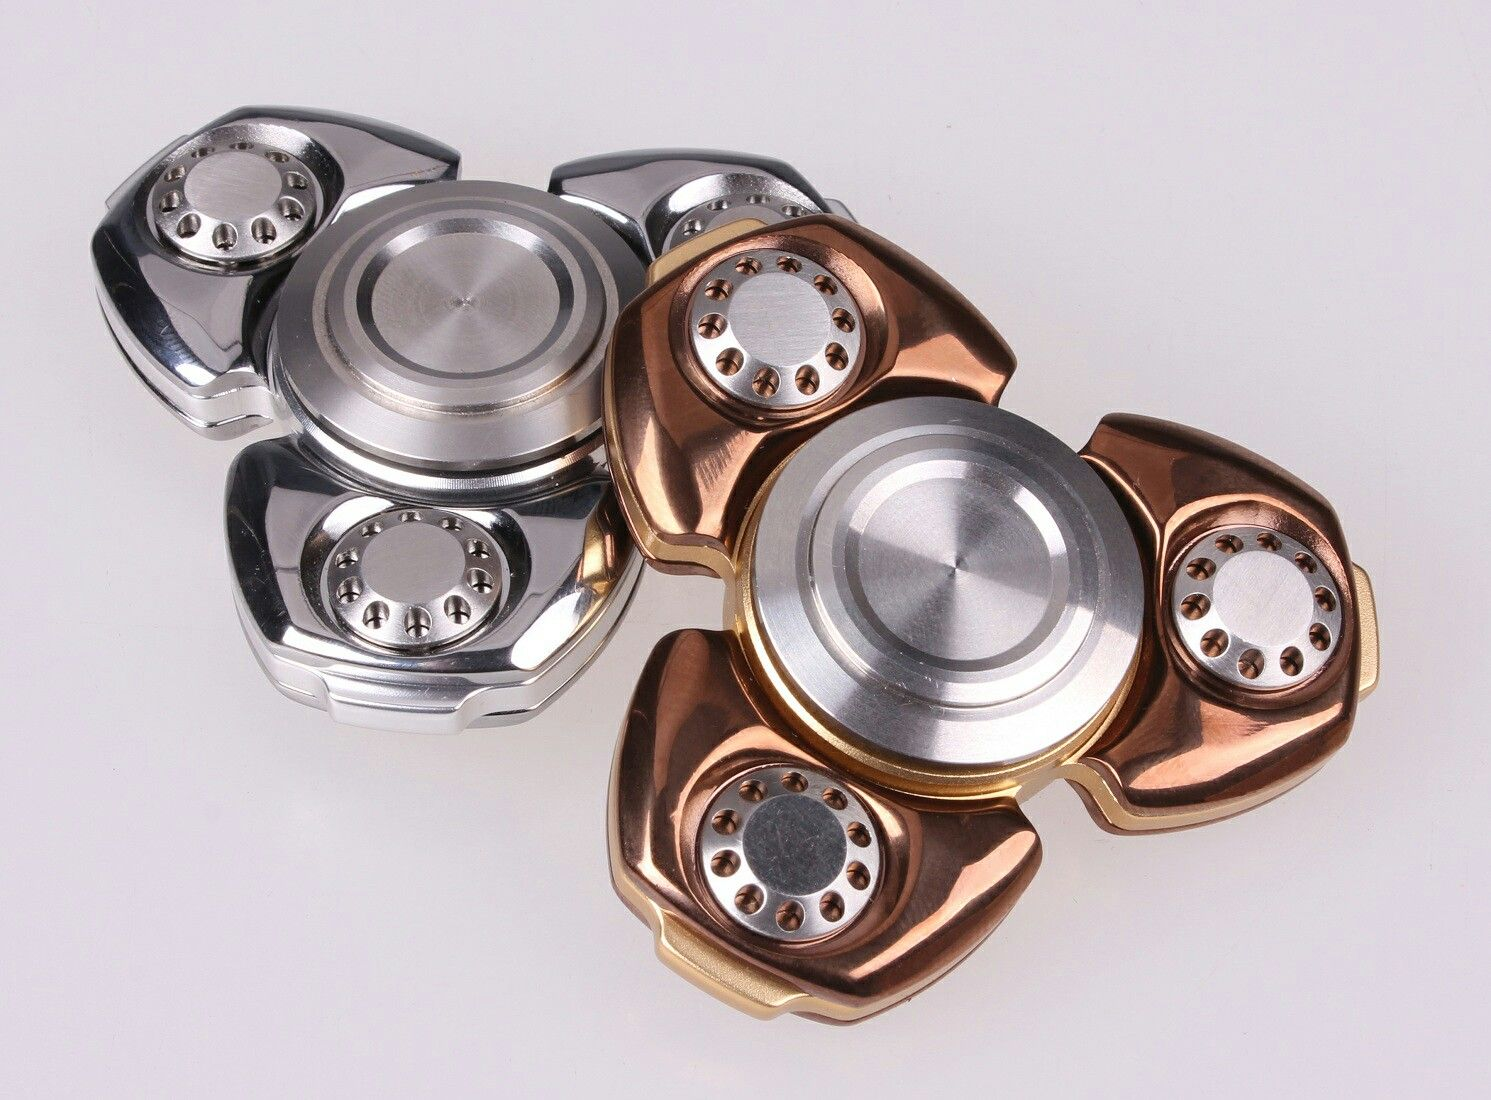 metal fidget spinners amazon. hand spinner fidget toys lathe coins gadgets accessories metal spinners amazon a